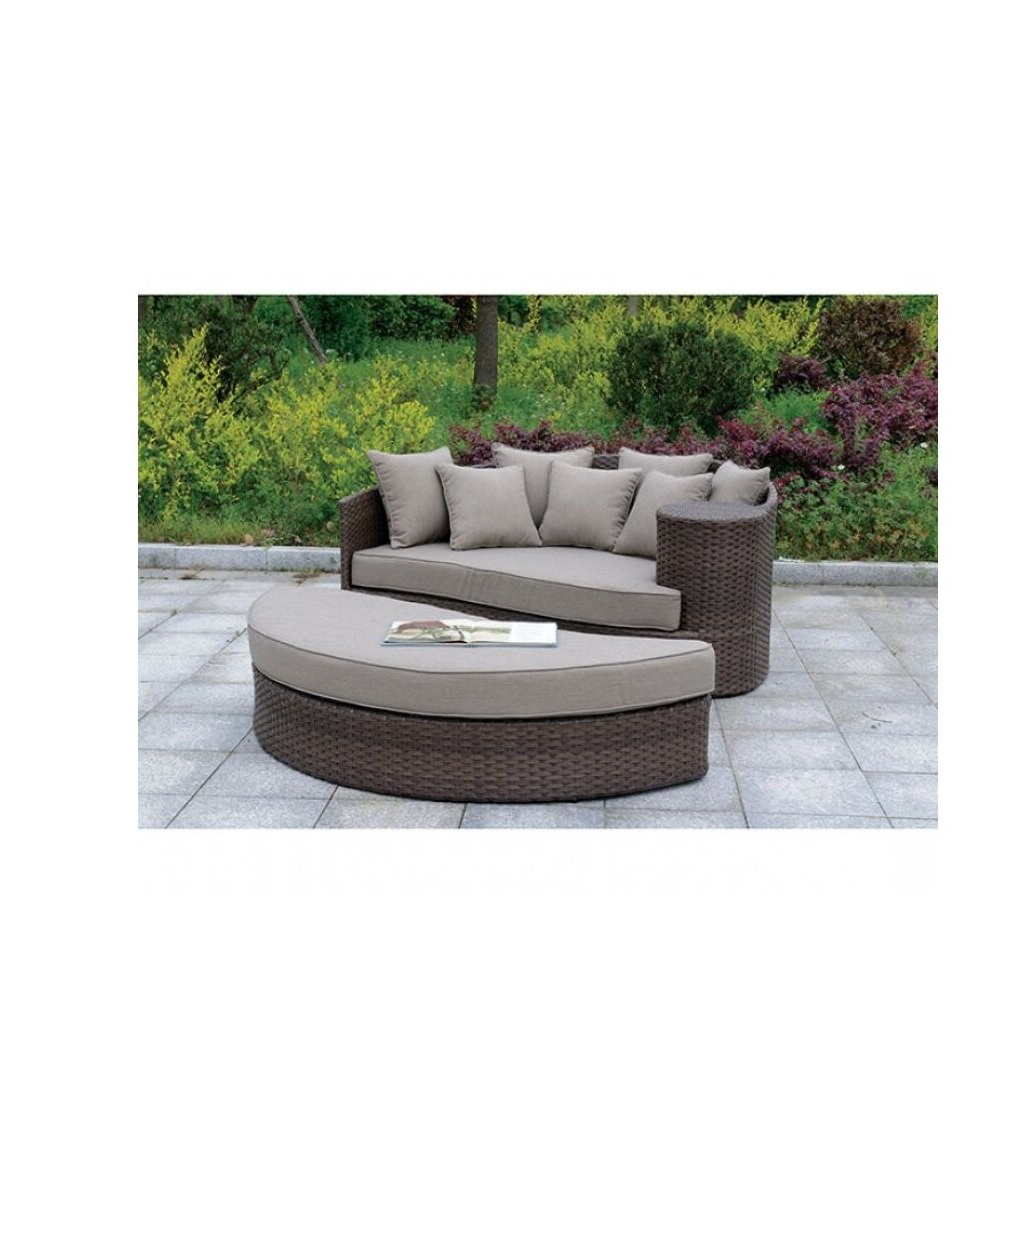 Olu Bamboo Large Round Patio Daybeds With Cushions With Widely Used Round Patio Daybed – Clubeserradeaires (View 17 of 20)